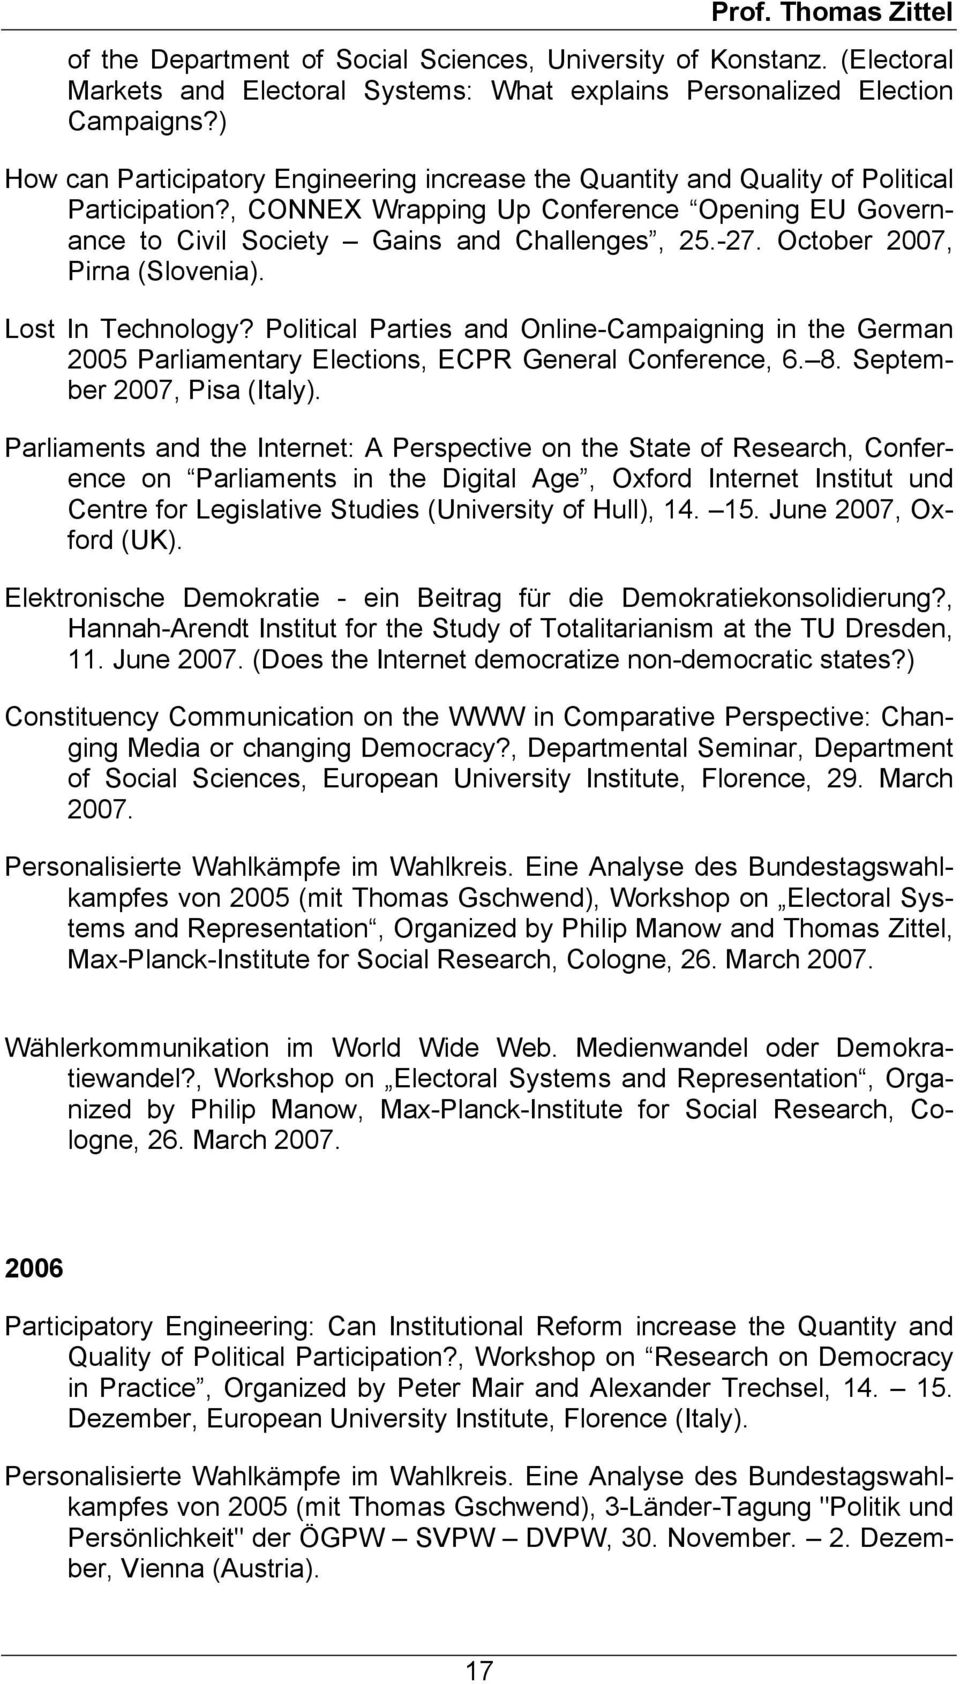 October 2007, Pirna (Slovenia). Lost In Technology? Political Parties and Online-Campaigning in the German 2005 Parliamentary Elections, ECPR General Conference, 6. 8. September 2007, Pisa (Italy).